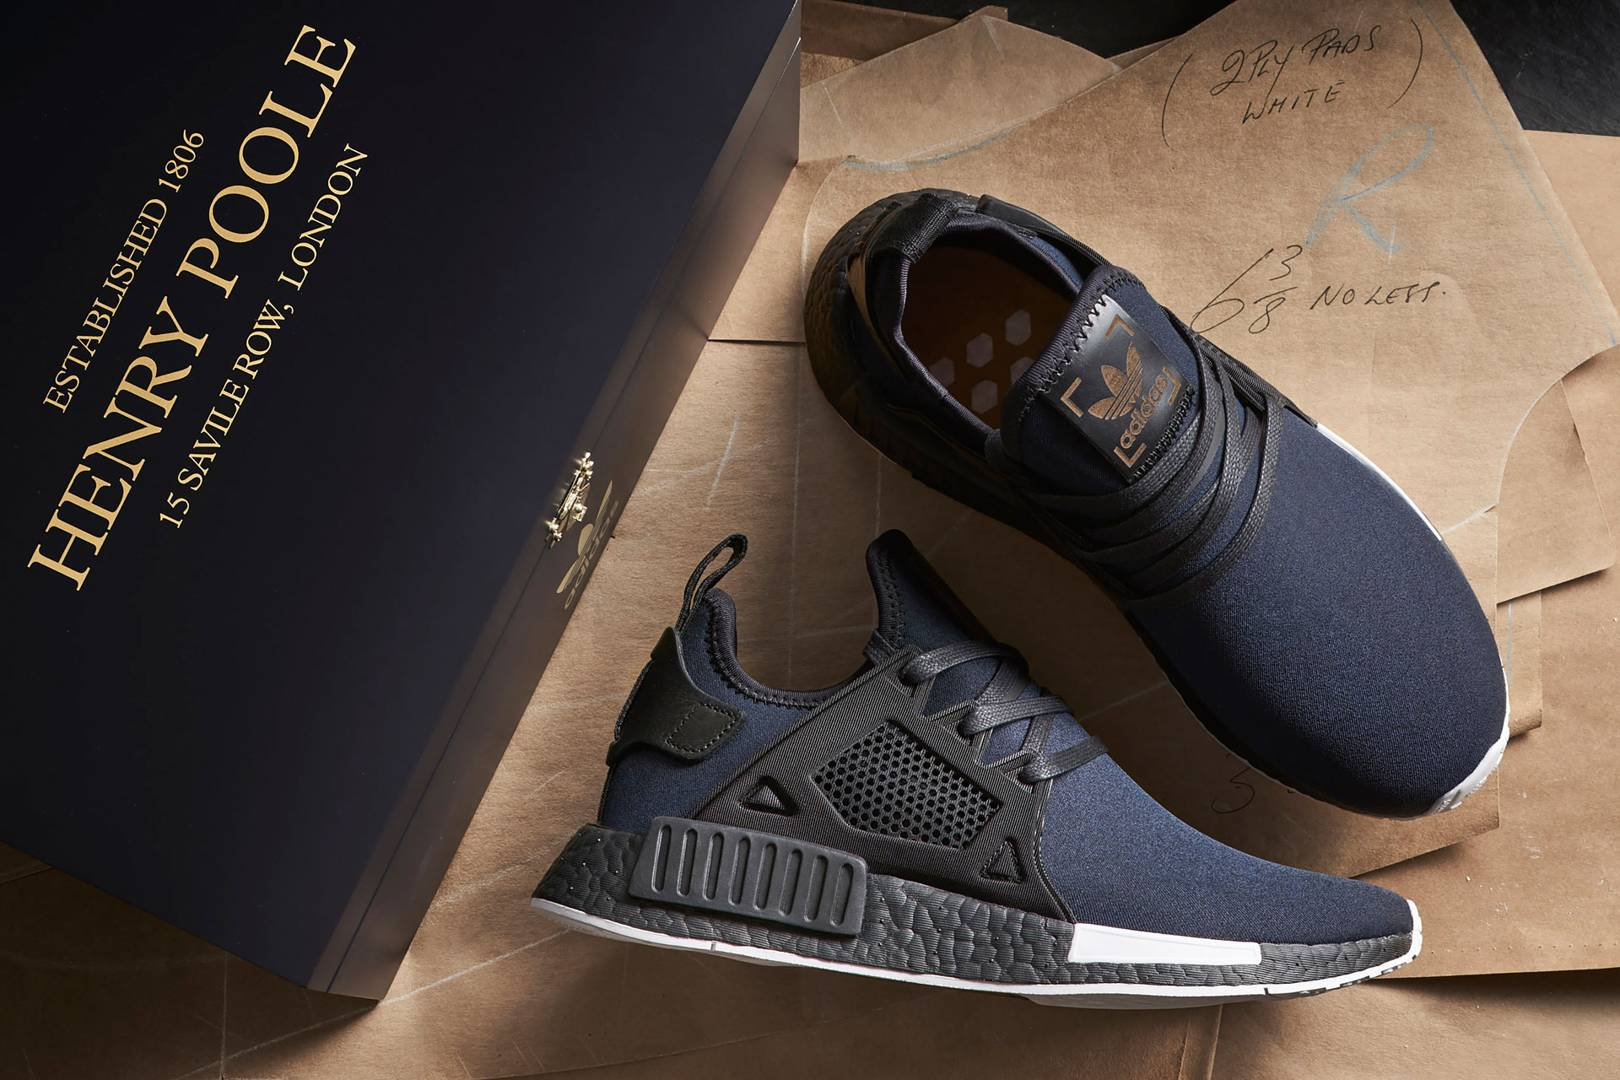 31ab7427b20b2 Adidas Originals x Henry Poole  Trainers with the Savile Row treatment